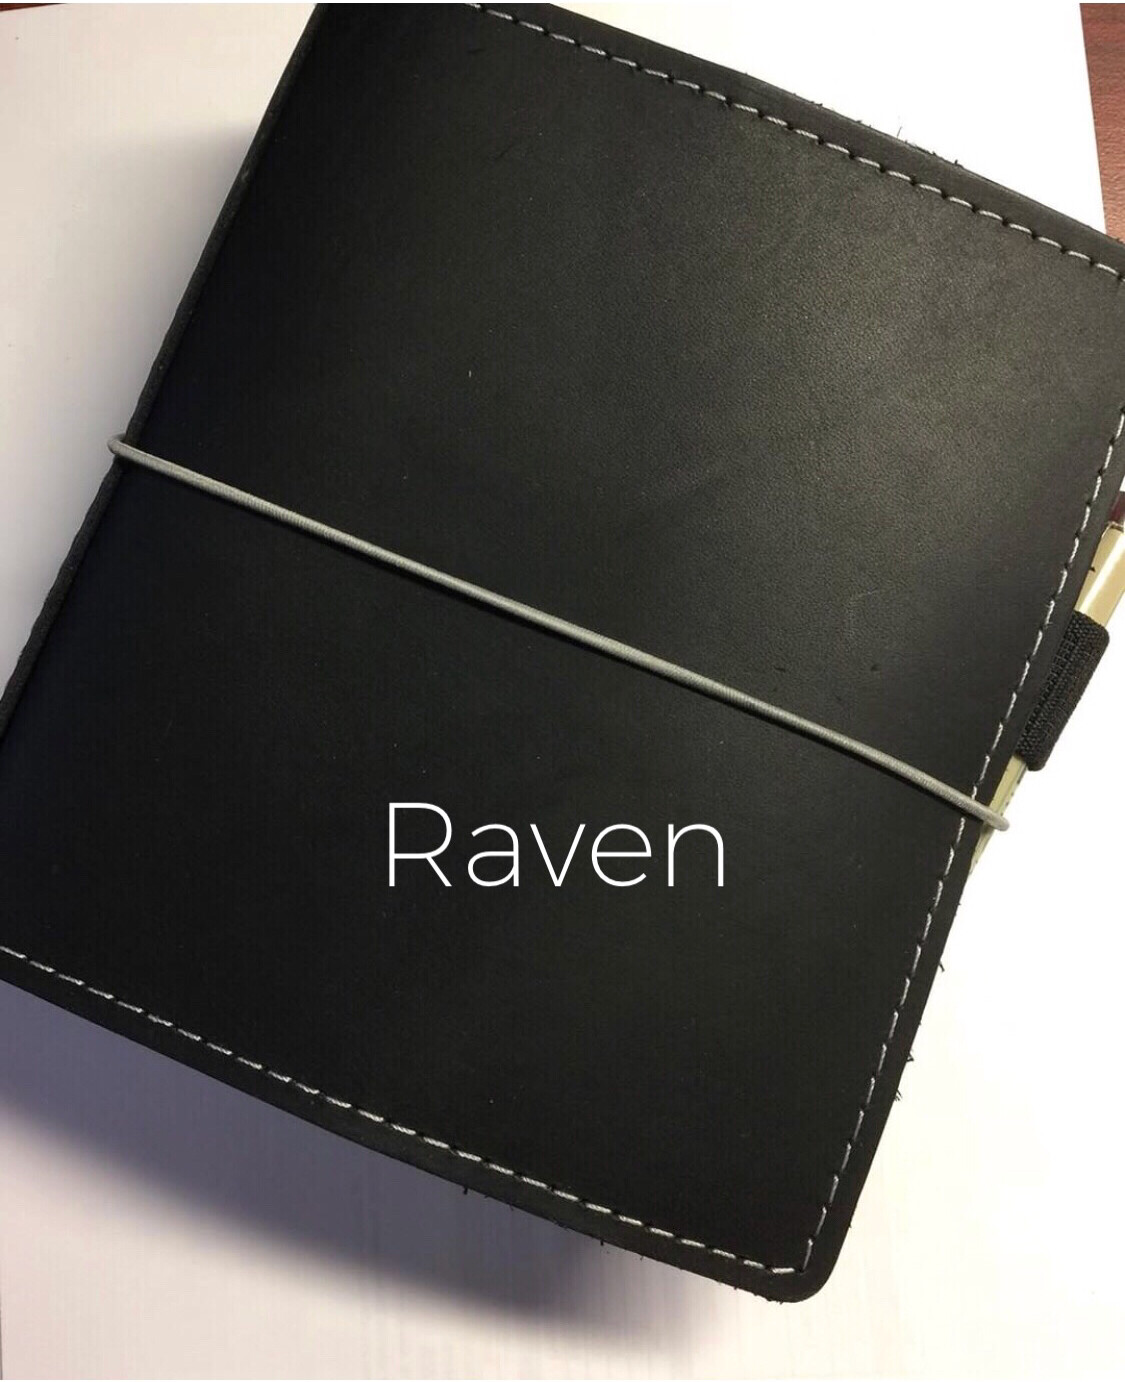 Raven A6, Personal, Personal wide, B6 Rings